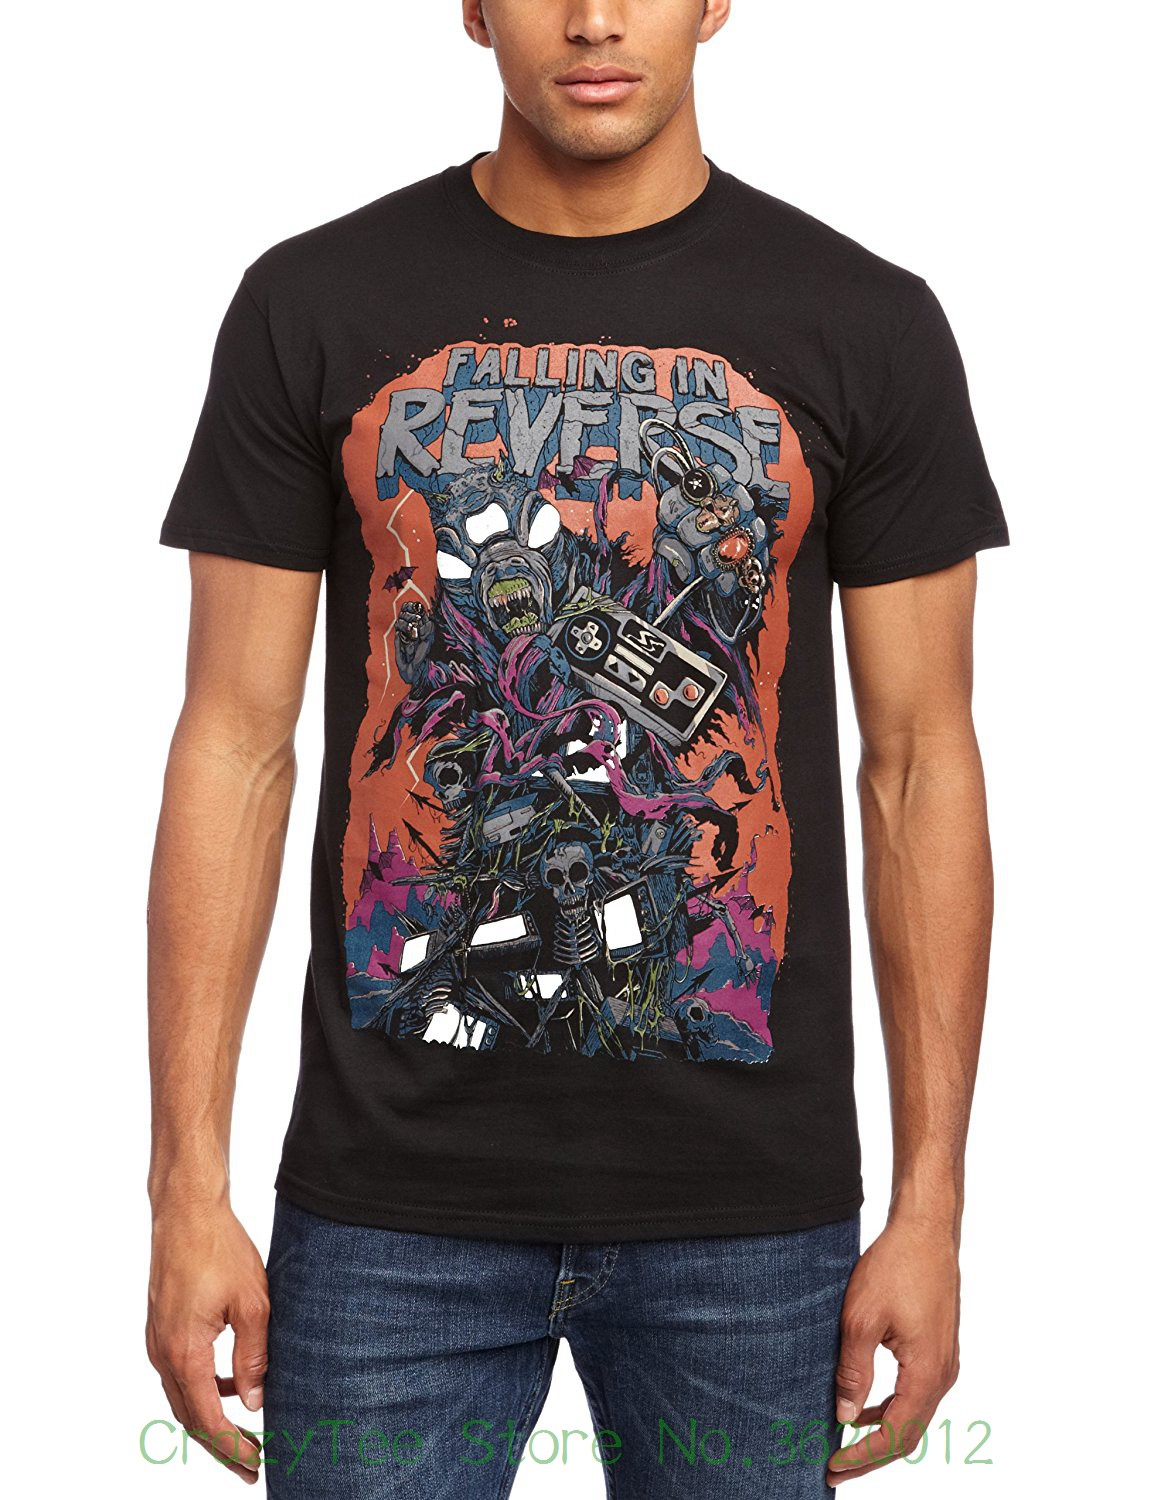 Funny Casual Brand Shirts Top Mens Falling In Reverse Video Game T-shirt Small Black